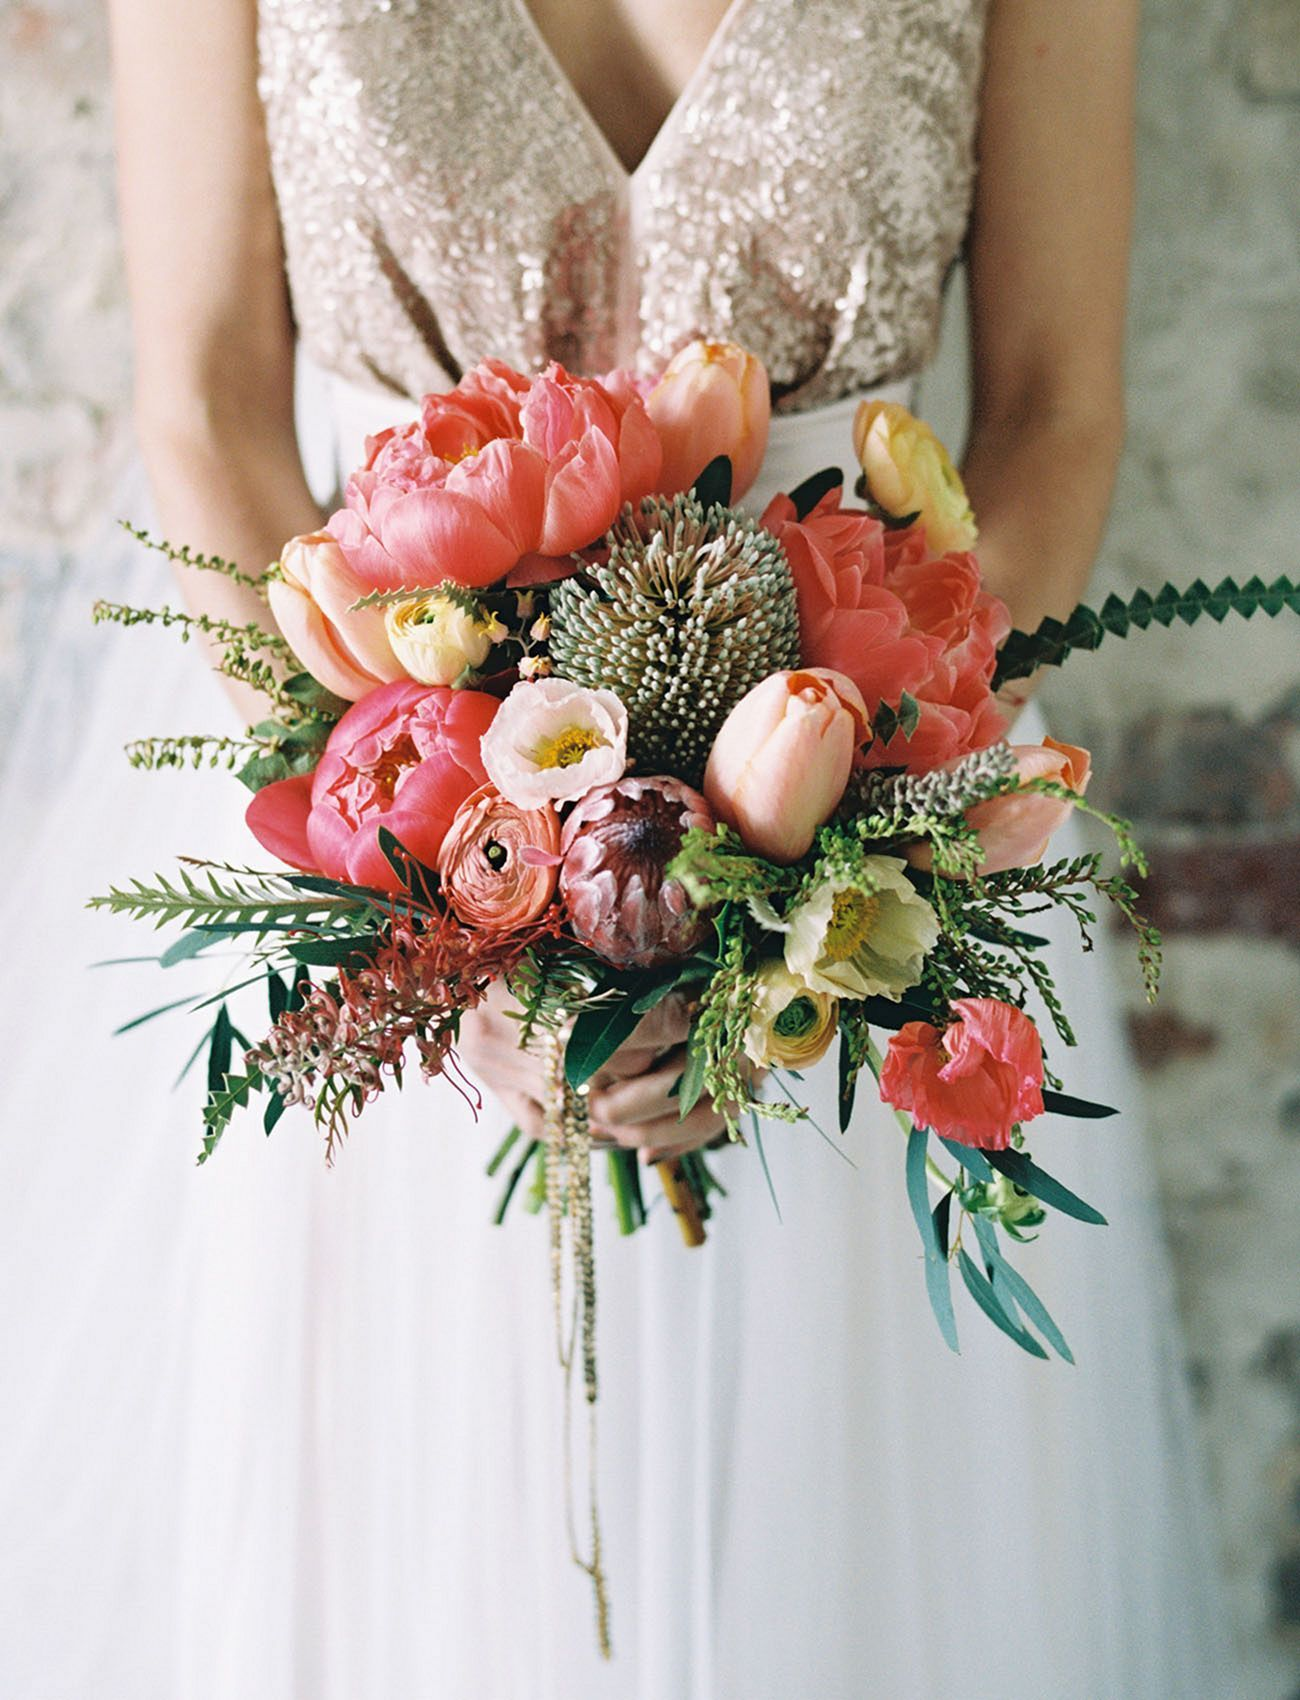 Image Result For Rustic Tulip Wedding Bouquet Tulip Bridal Bouquet Tulip Wedding Tulip Bouquet Wedding